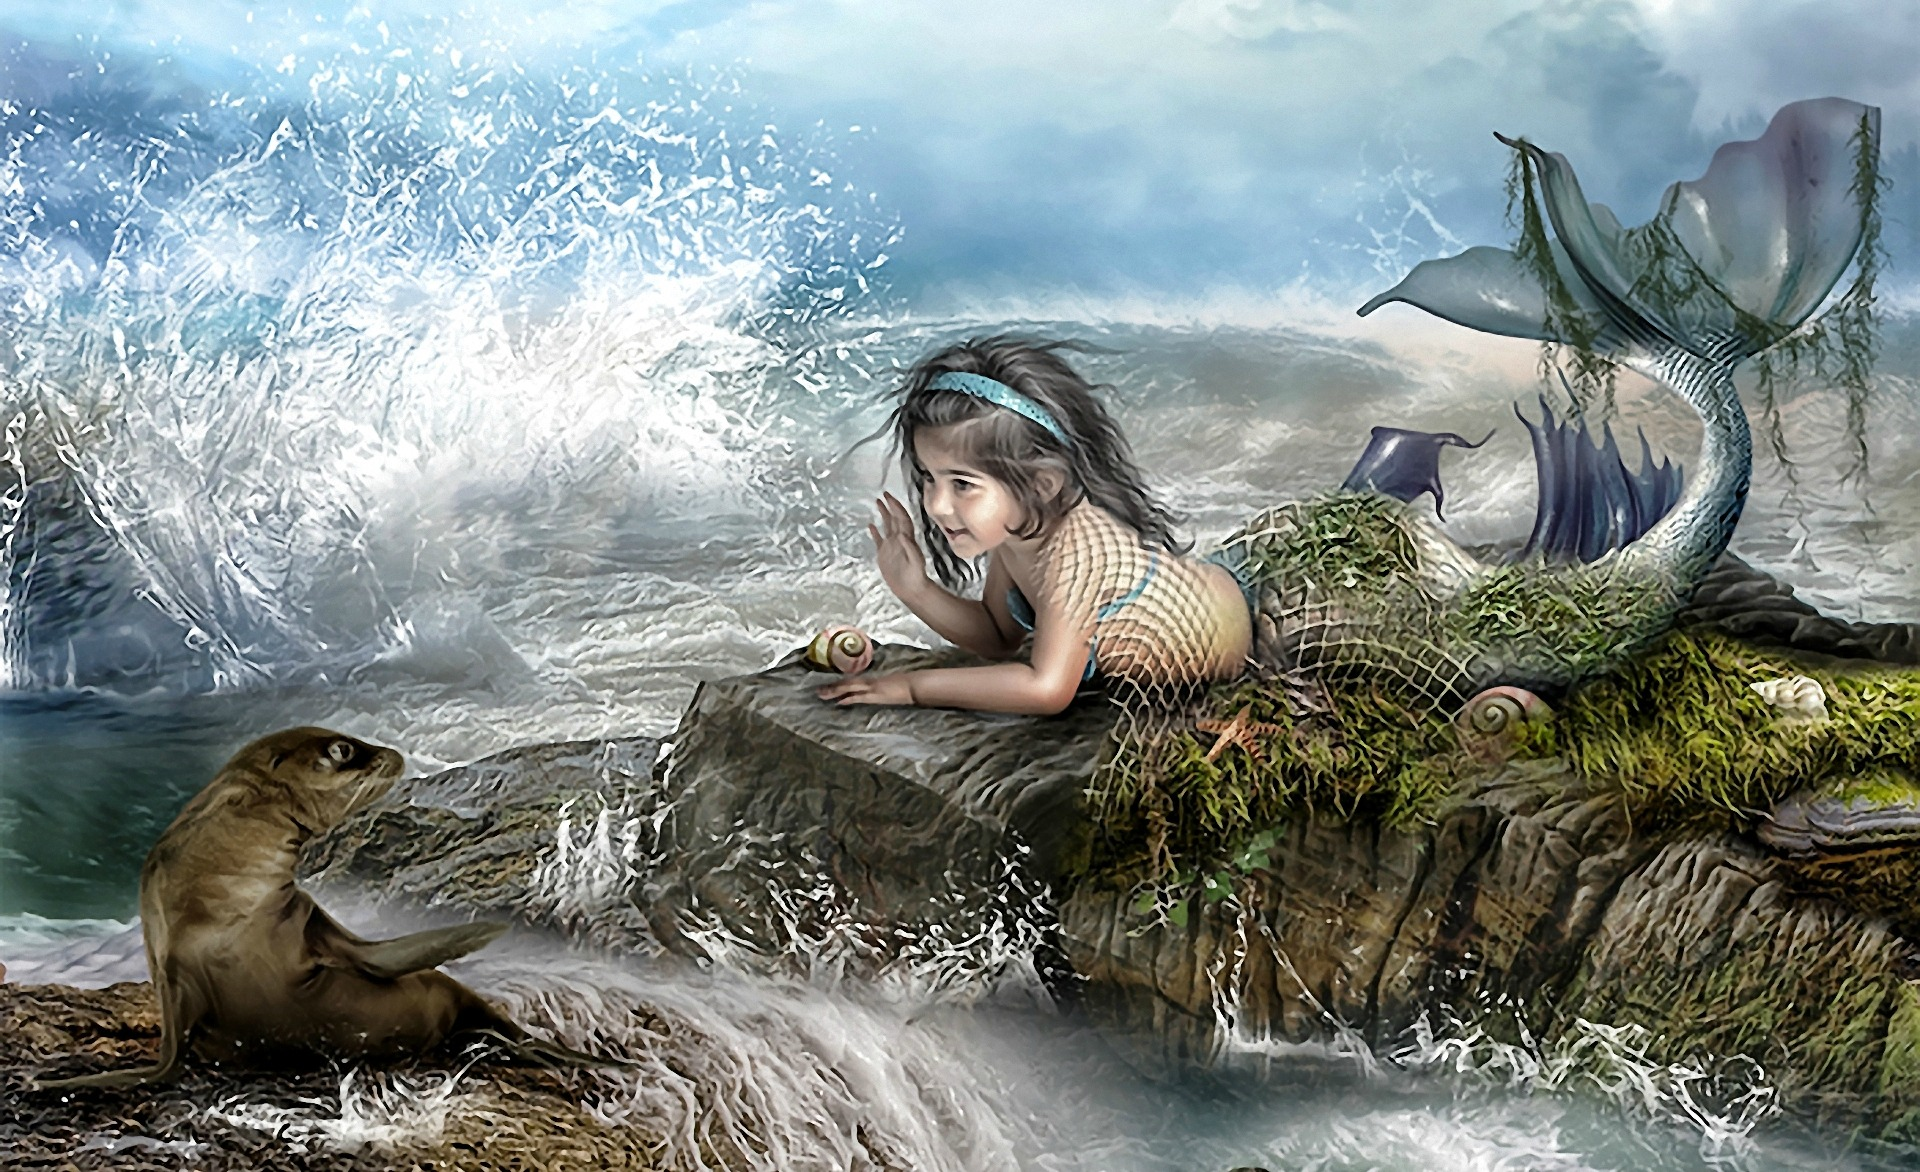 146 mermaid hd wallpapers backgrounds wallpaper abyss - Mermaid wallpaper hd ...